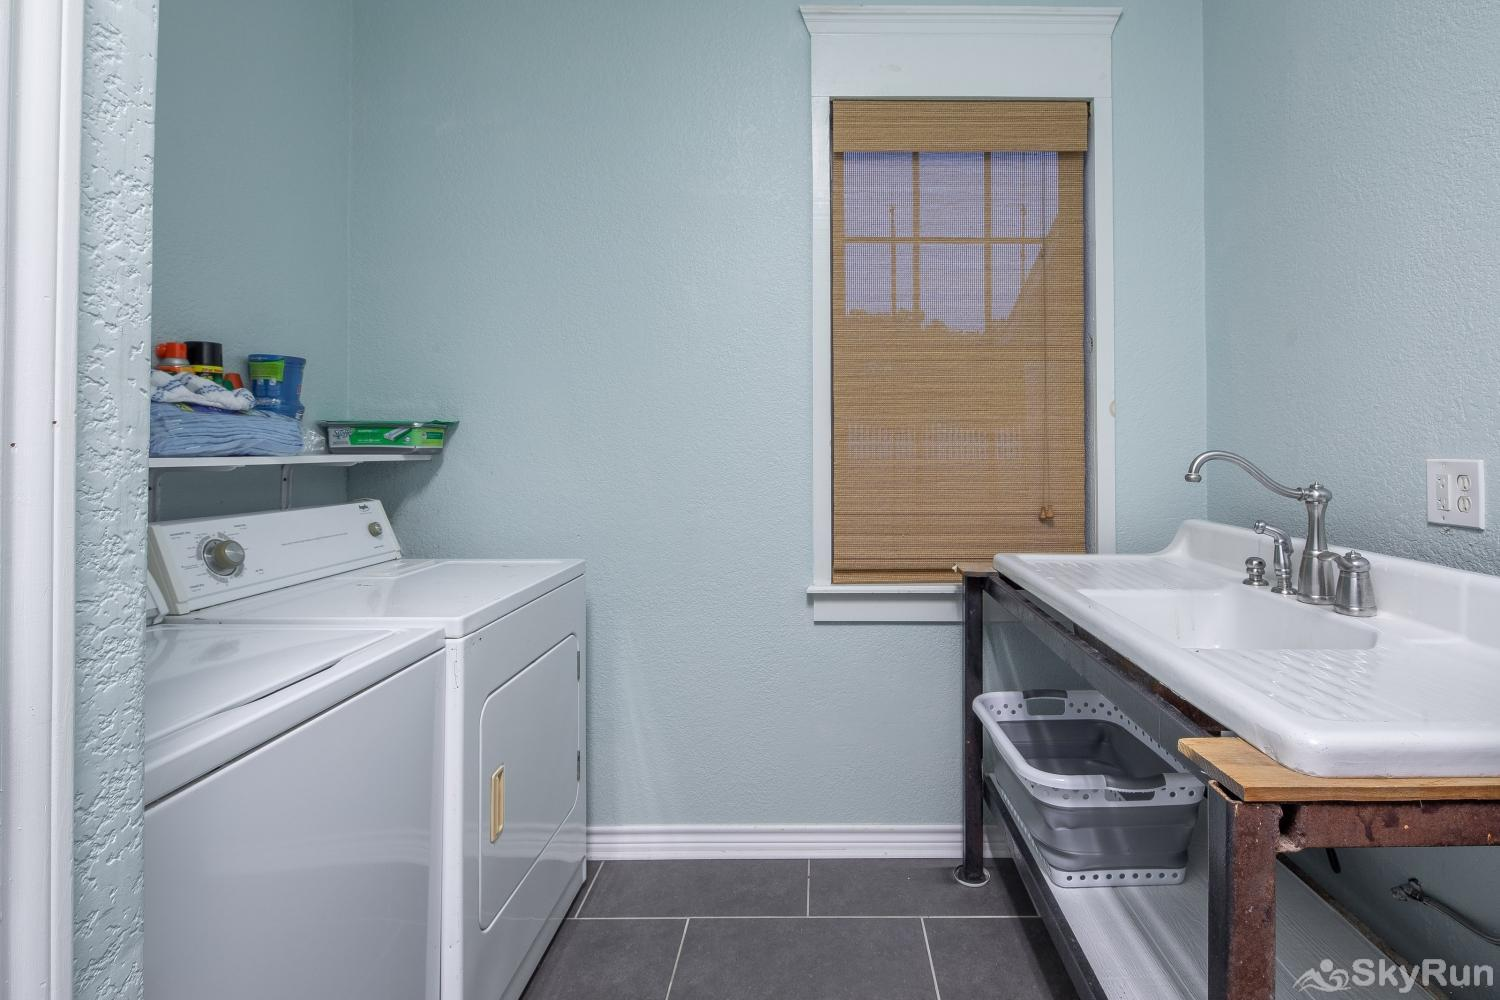 STONE RIDGE RETREAT Laundry room available for guest use